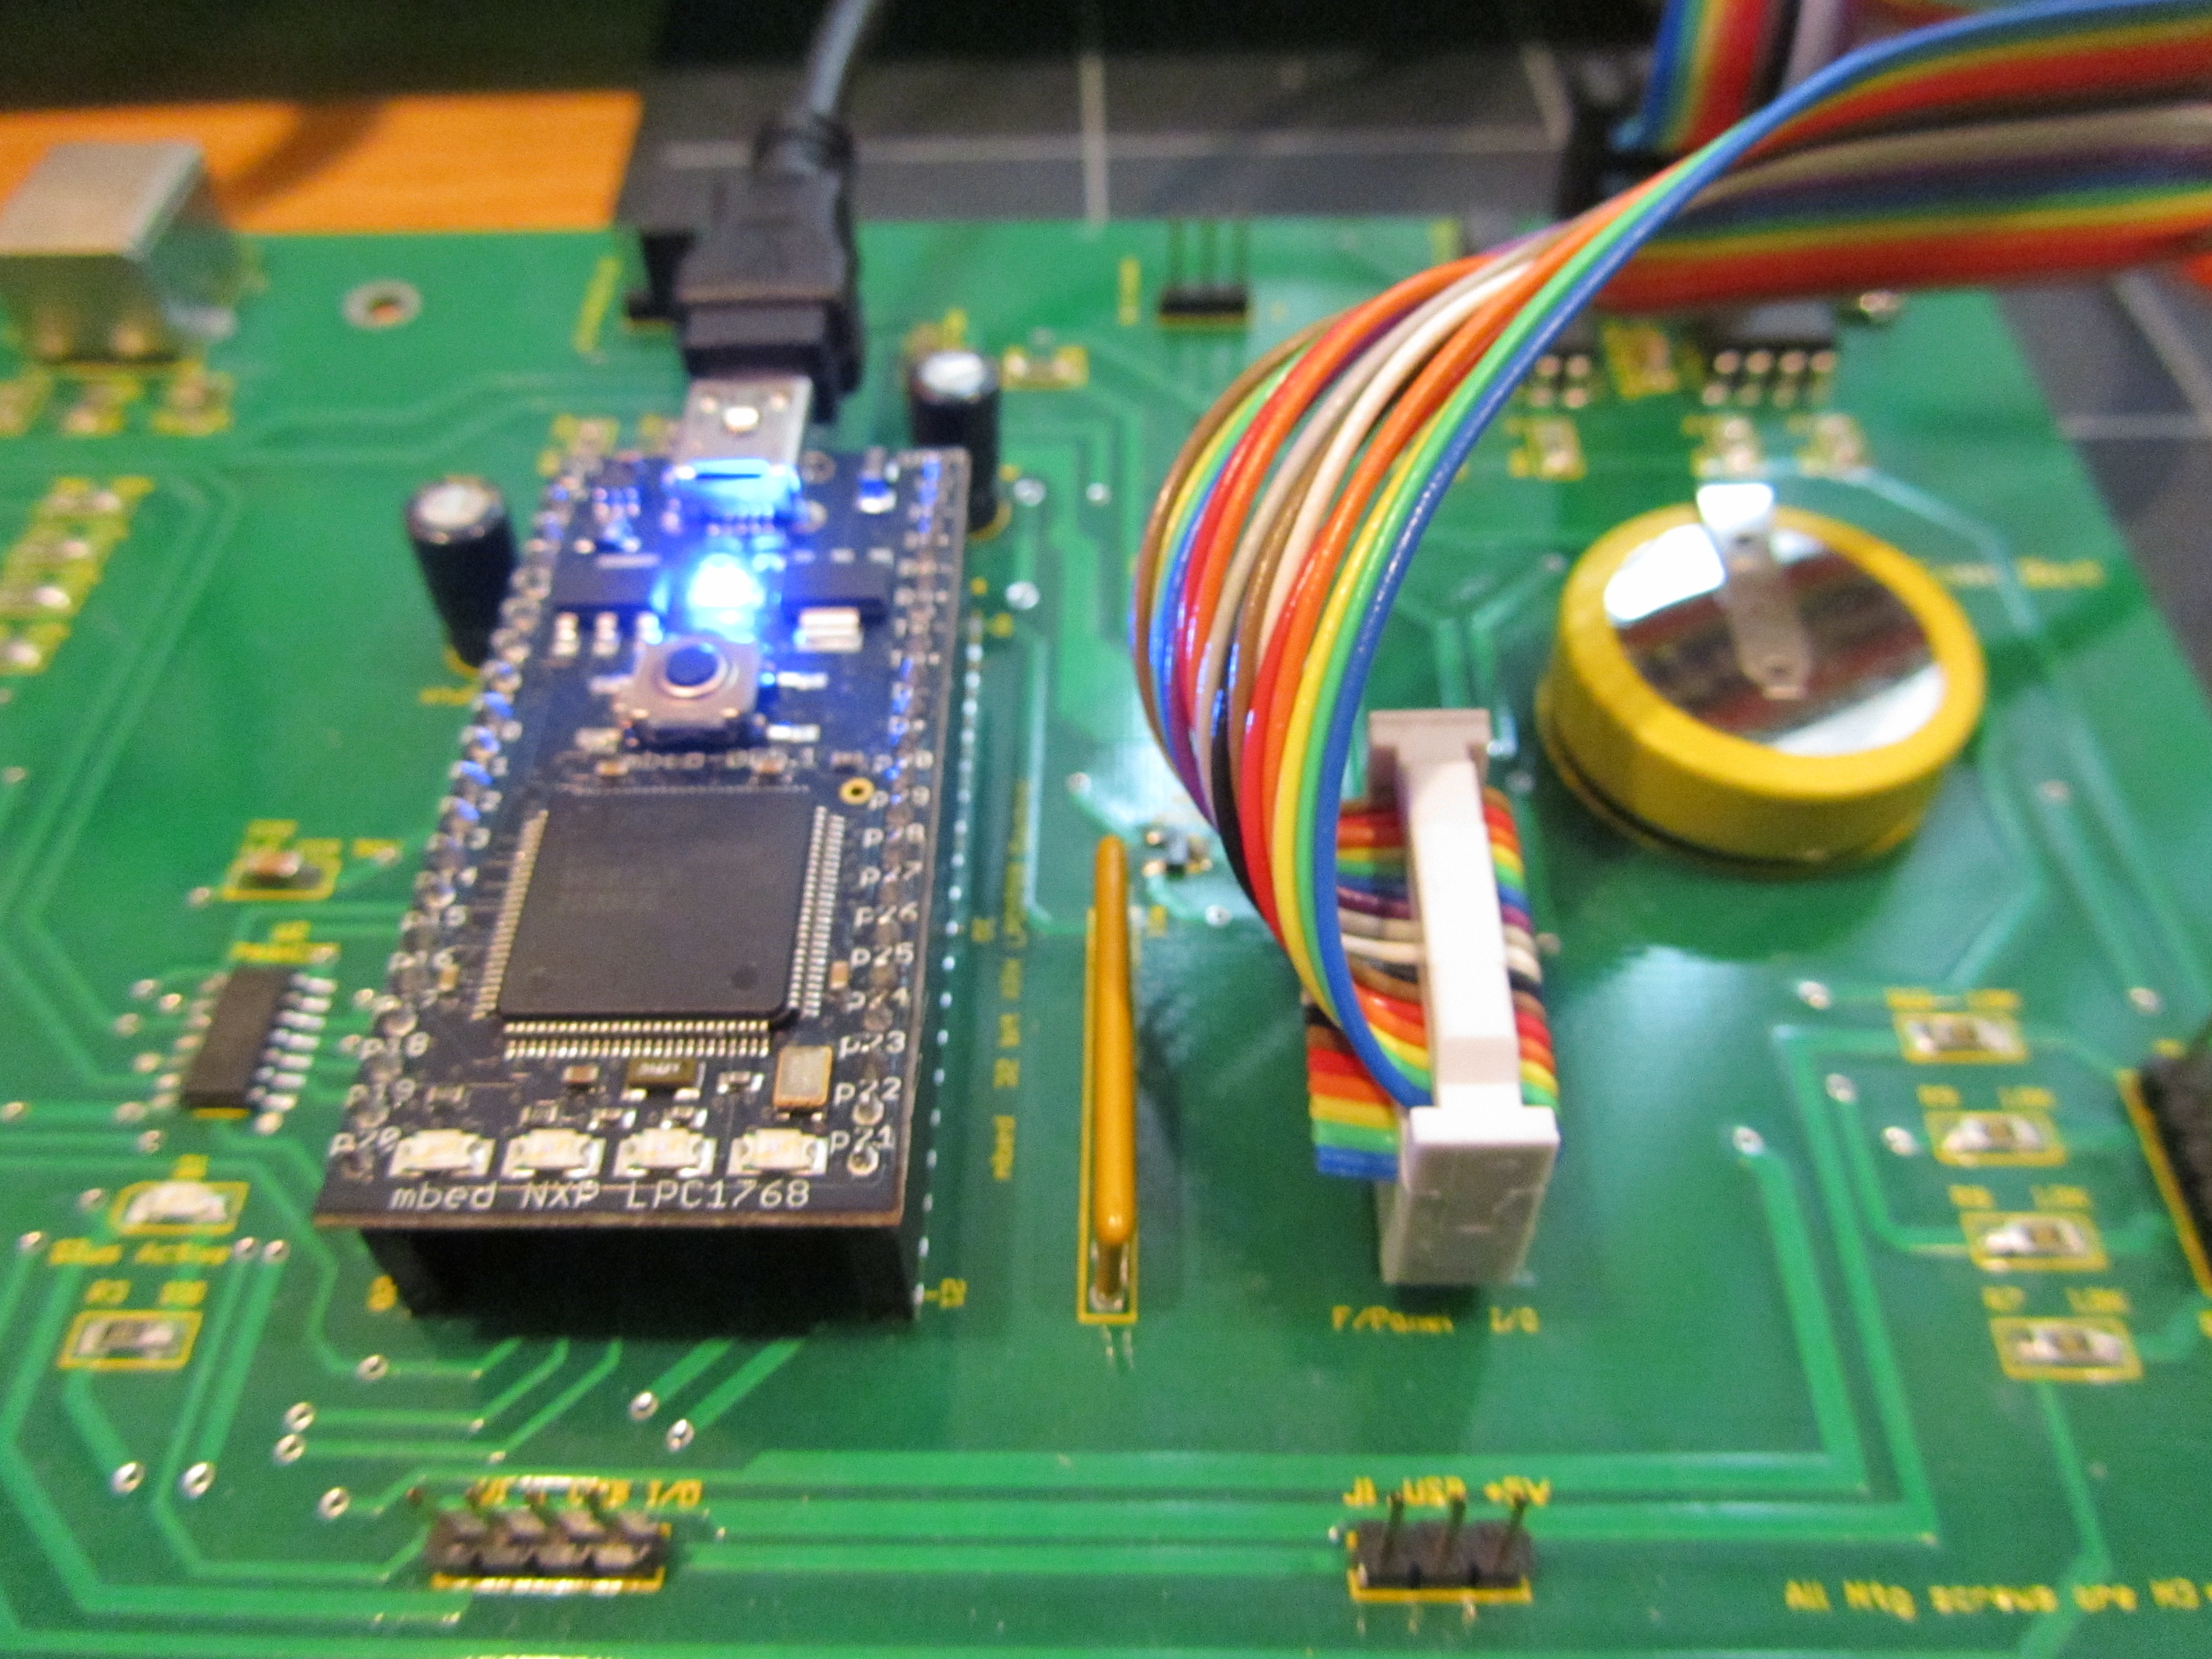 mbed Controller on the CPU Board